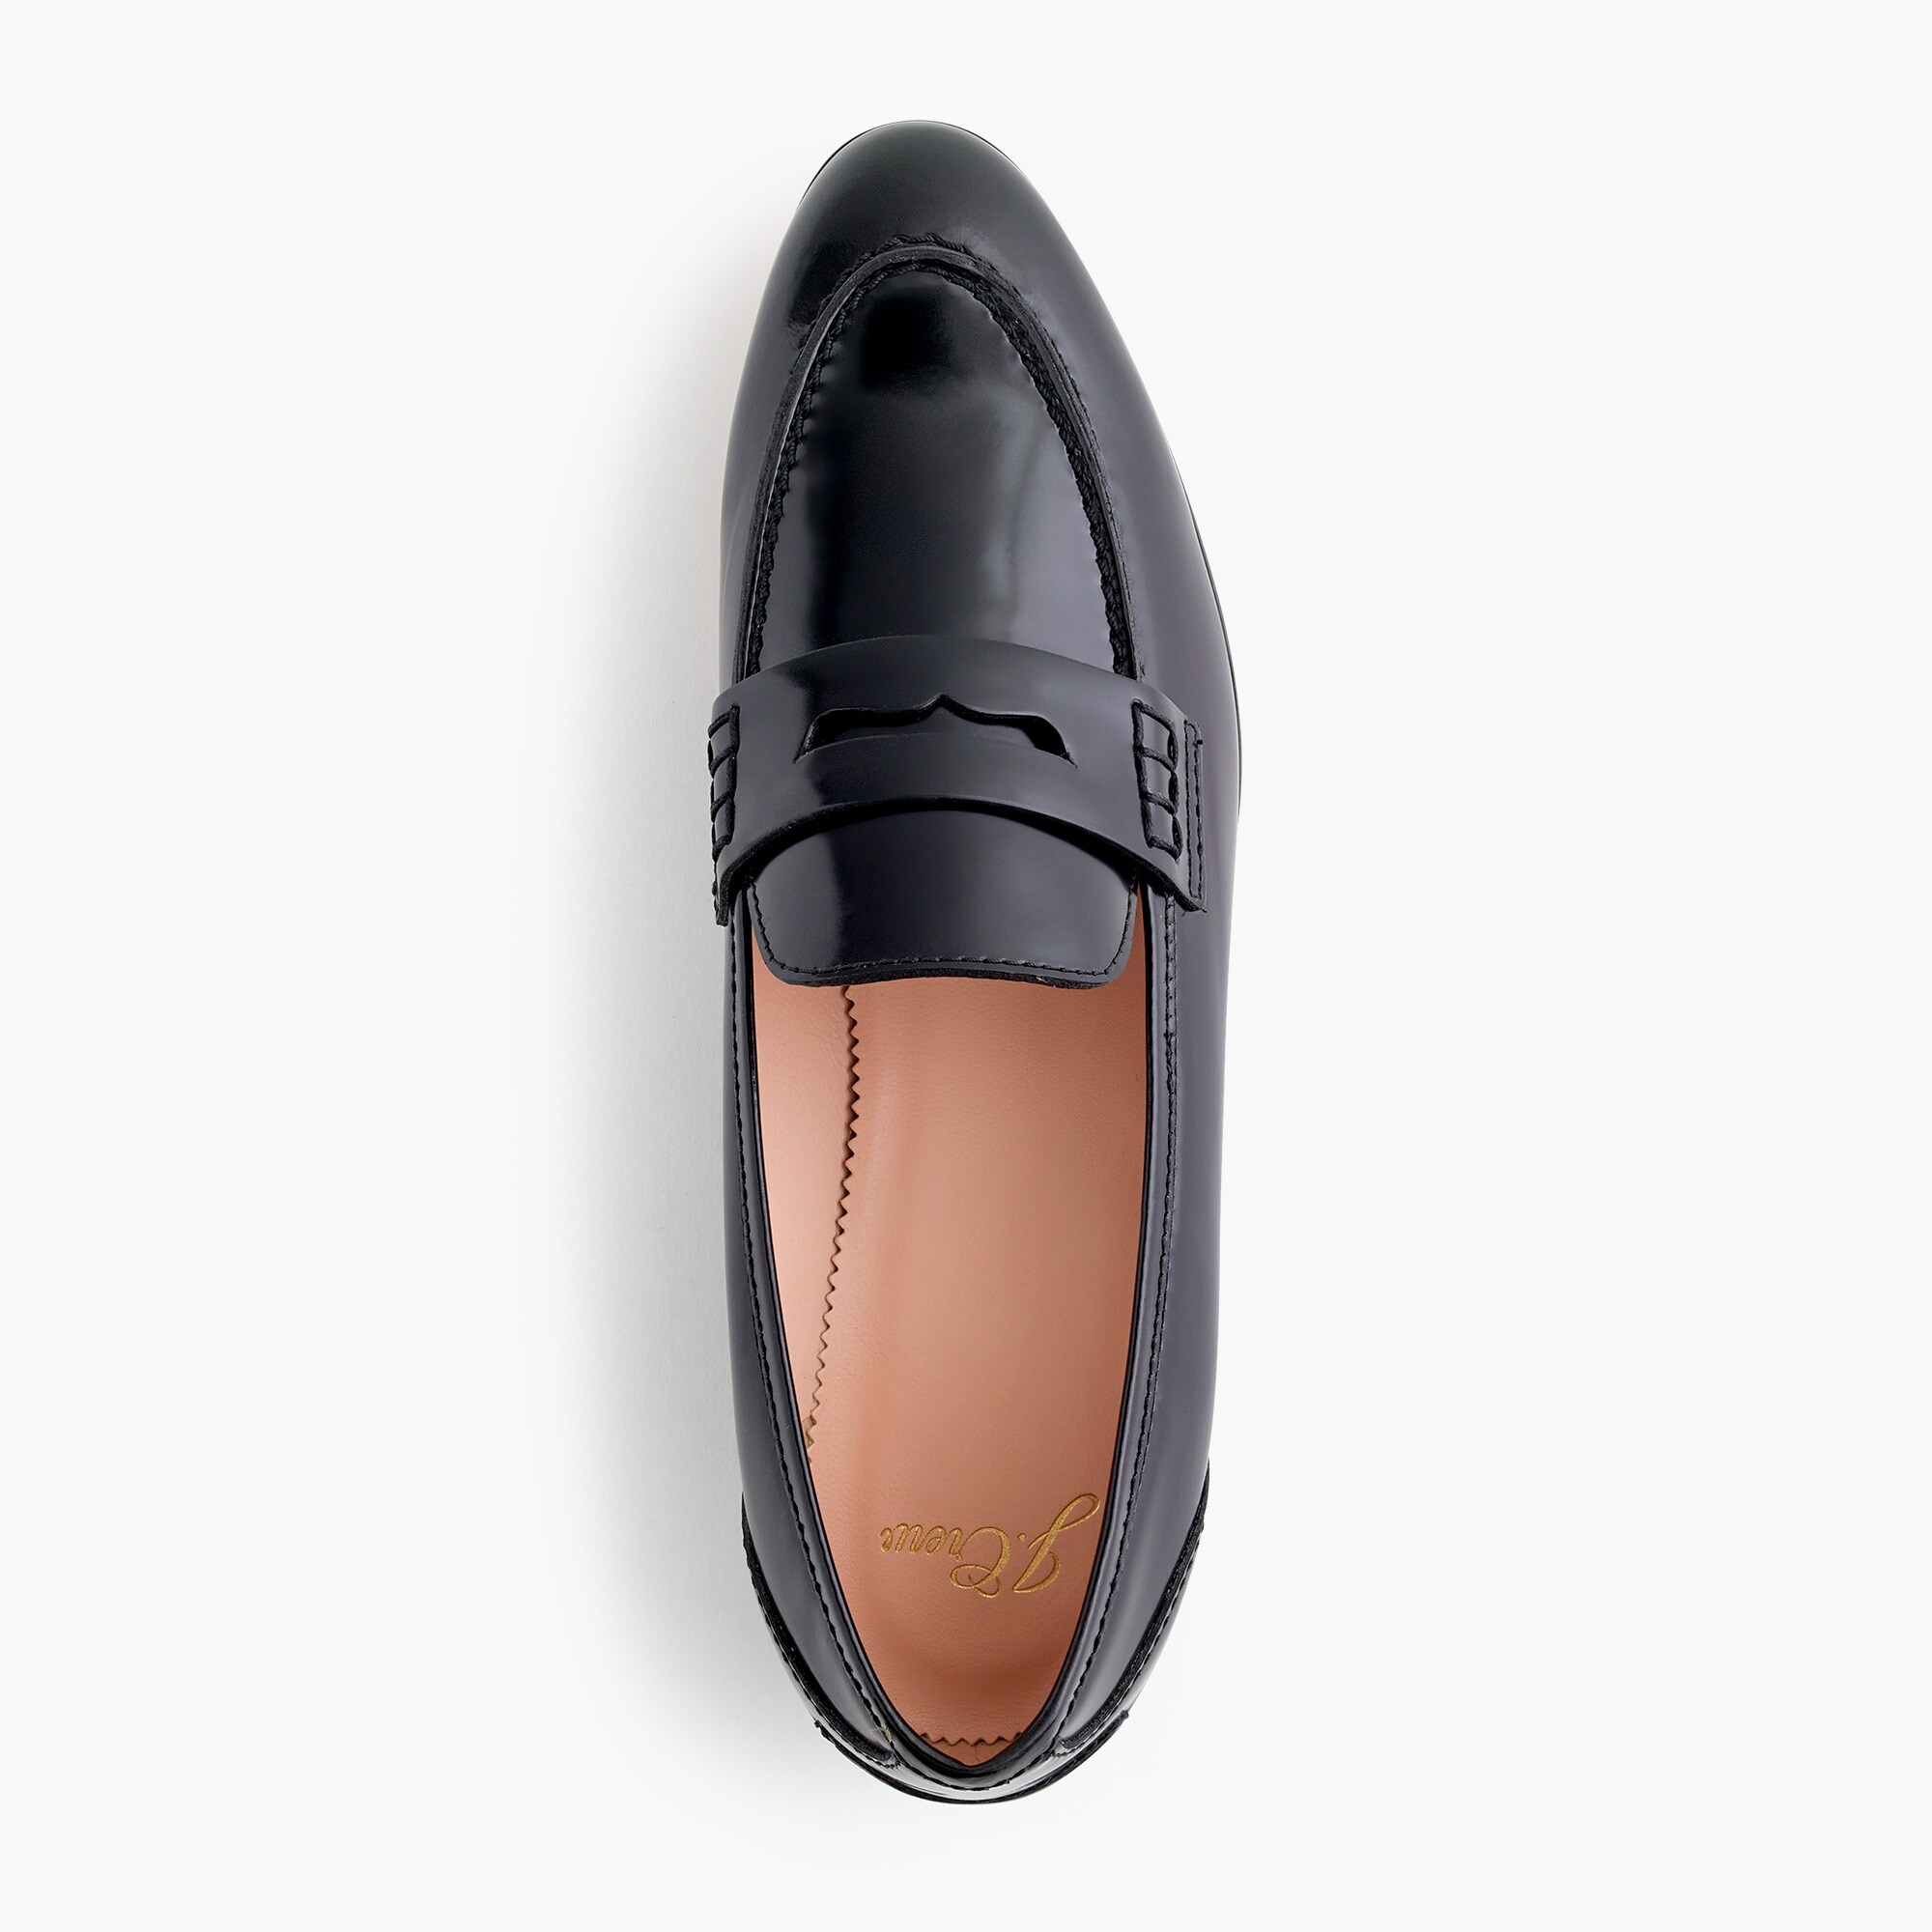 Image 2 for Academy penny loafers